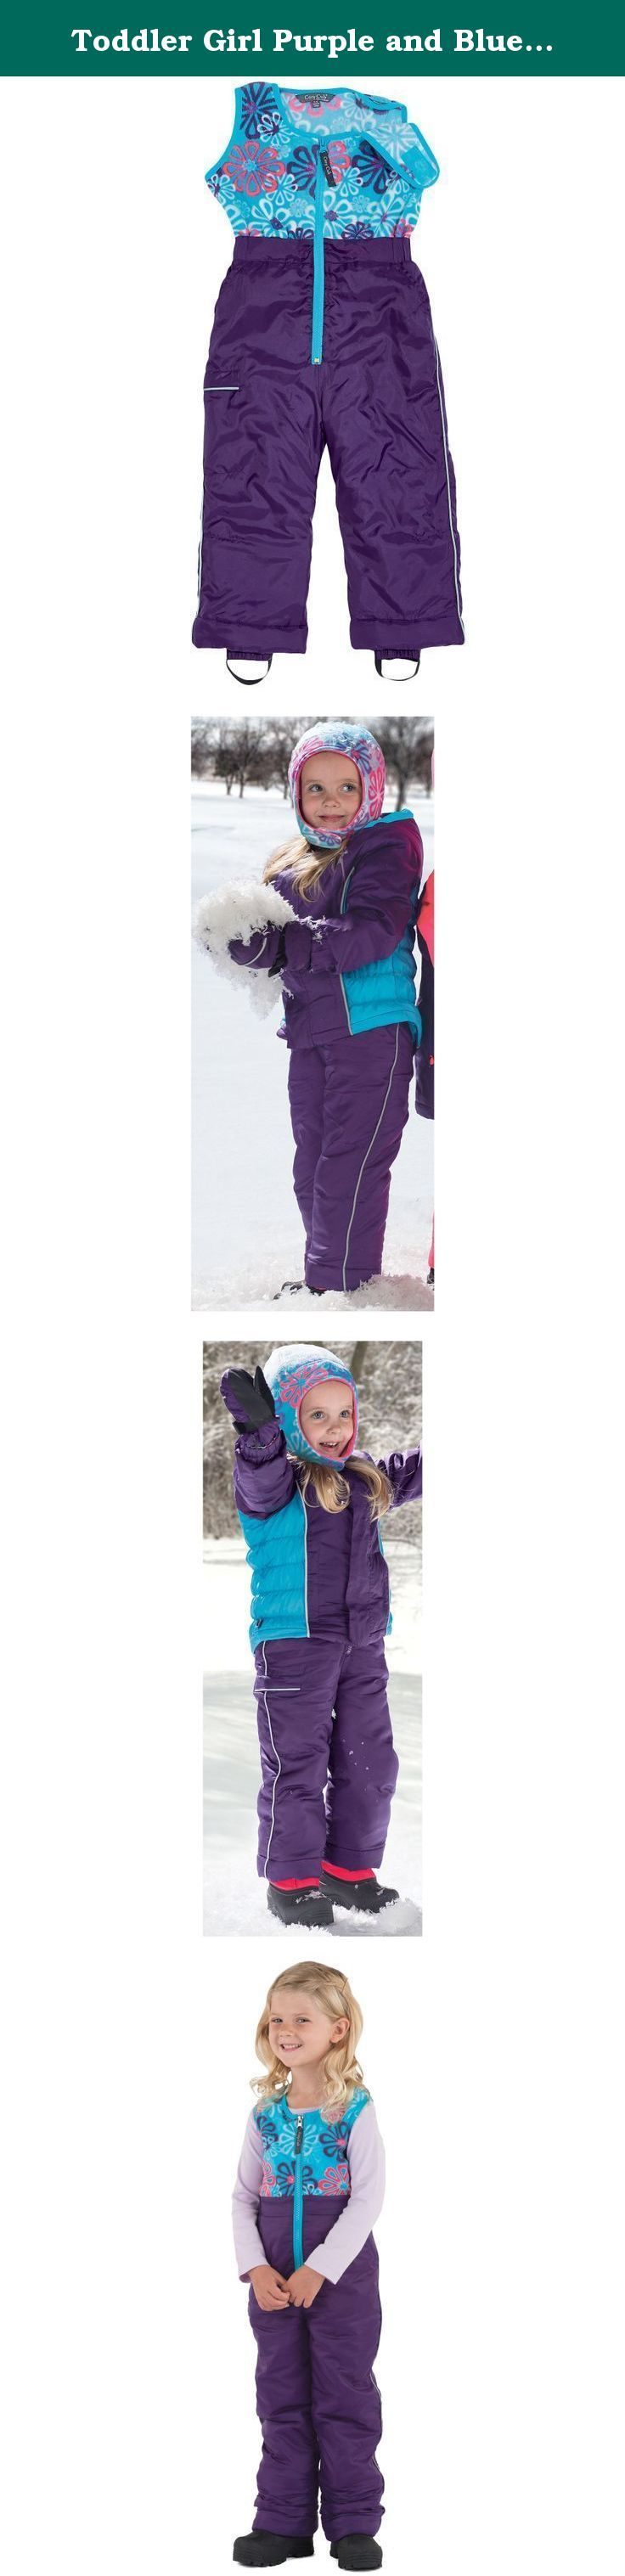 """Toddler Girl Purple and Blue Waterproof Winter Snow Pants by Cozy Cub, Size 3T. One Step Ahead has been making life easier, safer and more fun for parents and kids for more than 25 years. When they cannot find a product that meets their high standards, their in-house design team works closely with parents to develop ingenious, high quality products that are at least """"one step ahead"""" of the competition. Cozy Cub Technical Outerwear is a line of coordinating cold-weather winter outerwear…"""